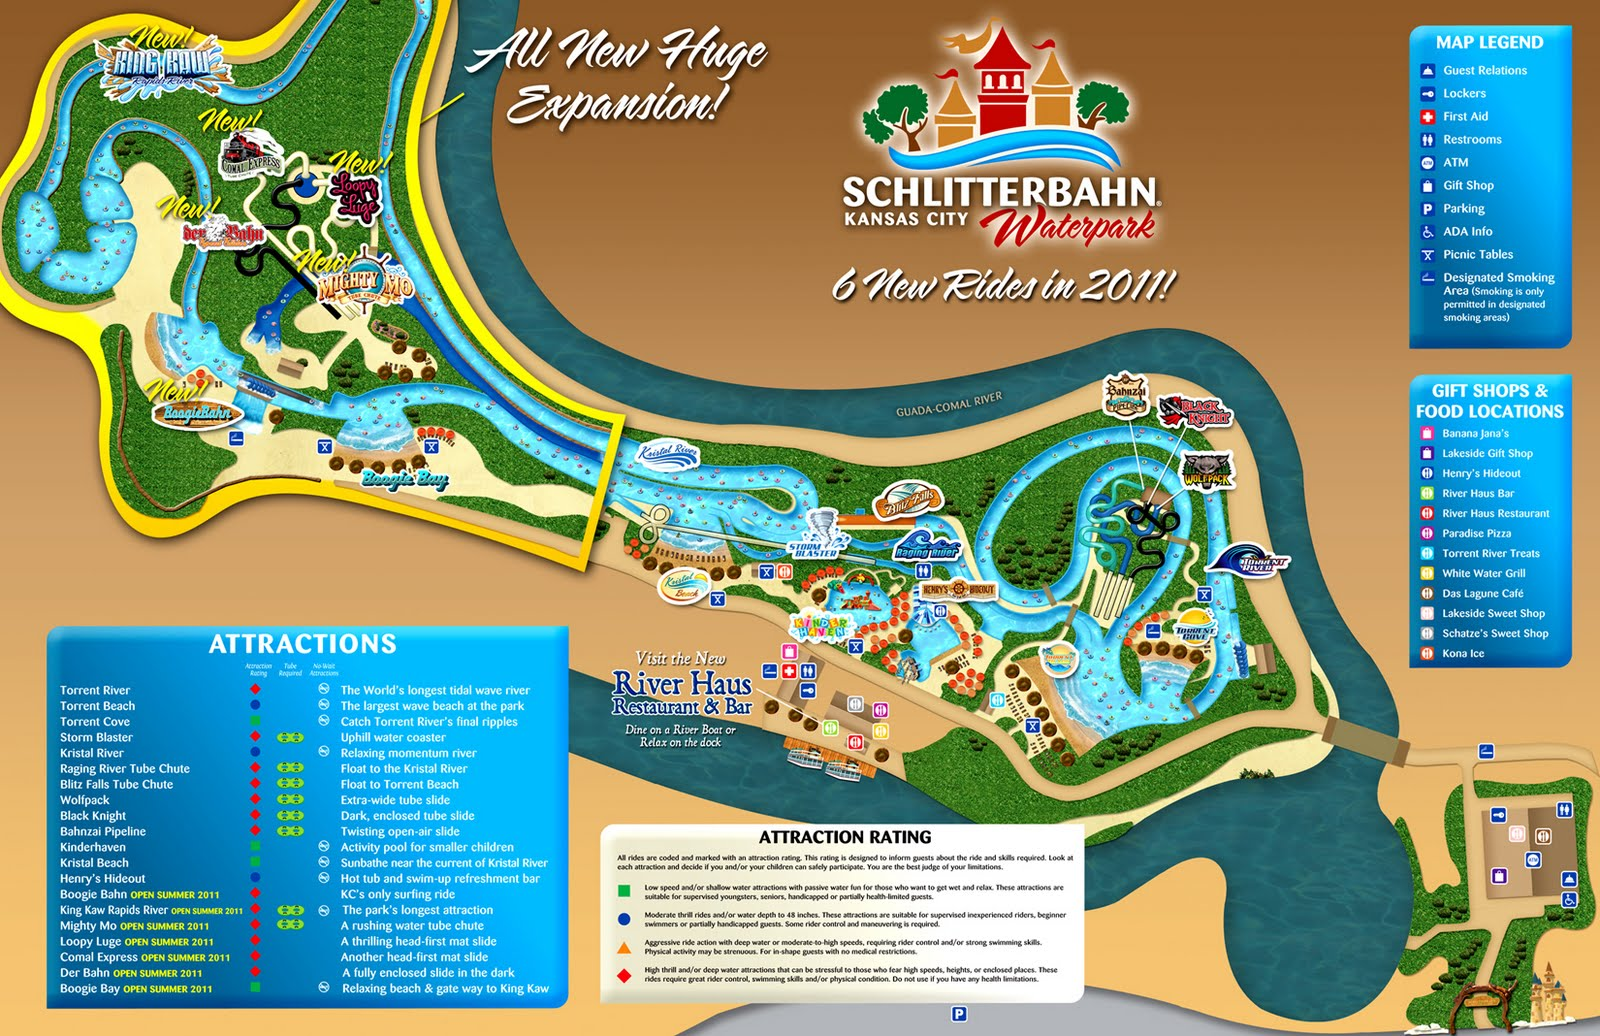 Schlitterbahn Kansas City Park Map | PAMELMUS on pittsburgh attractions map, honolulu oahu attractions map, kansas city shopping, pasadena attractions map, kansas tourist map, fairbanks attractions map, shenzhen attractions map, kansas city restaurants, wisconsin attractions map, alexandria attractions map, montego bay jamaica attractions map, kansas city amusement parks, newport attractions map, hangzhou attractions map, ohio attractions map, jacksonville attractions map, new jersey attractions map, portland attractions map, philadelphia attractions map, saint louis attractions map,